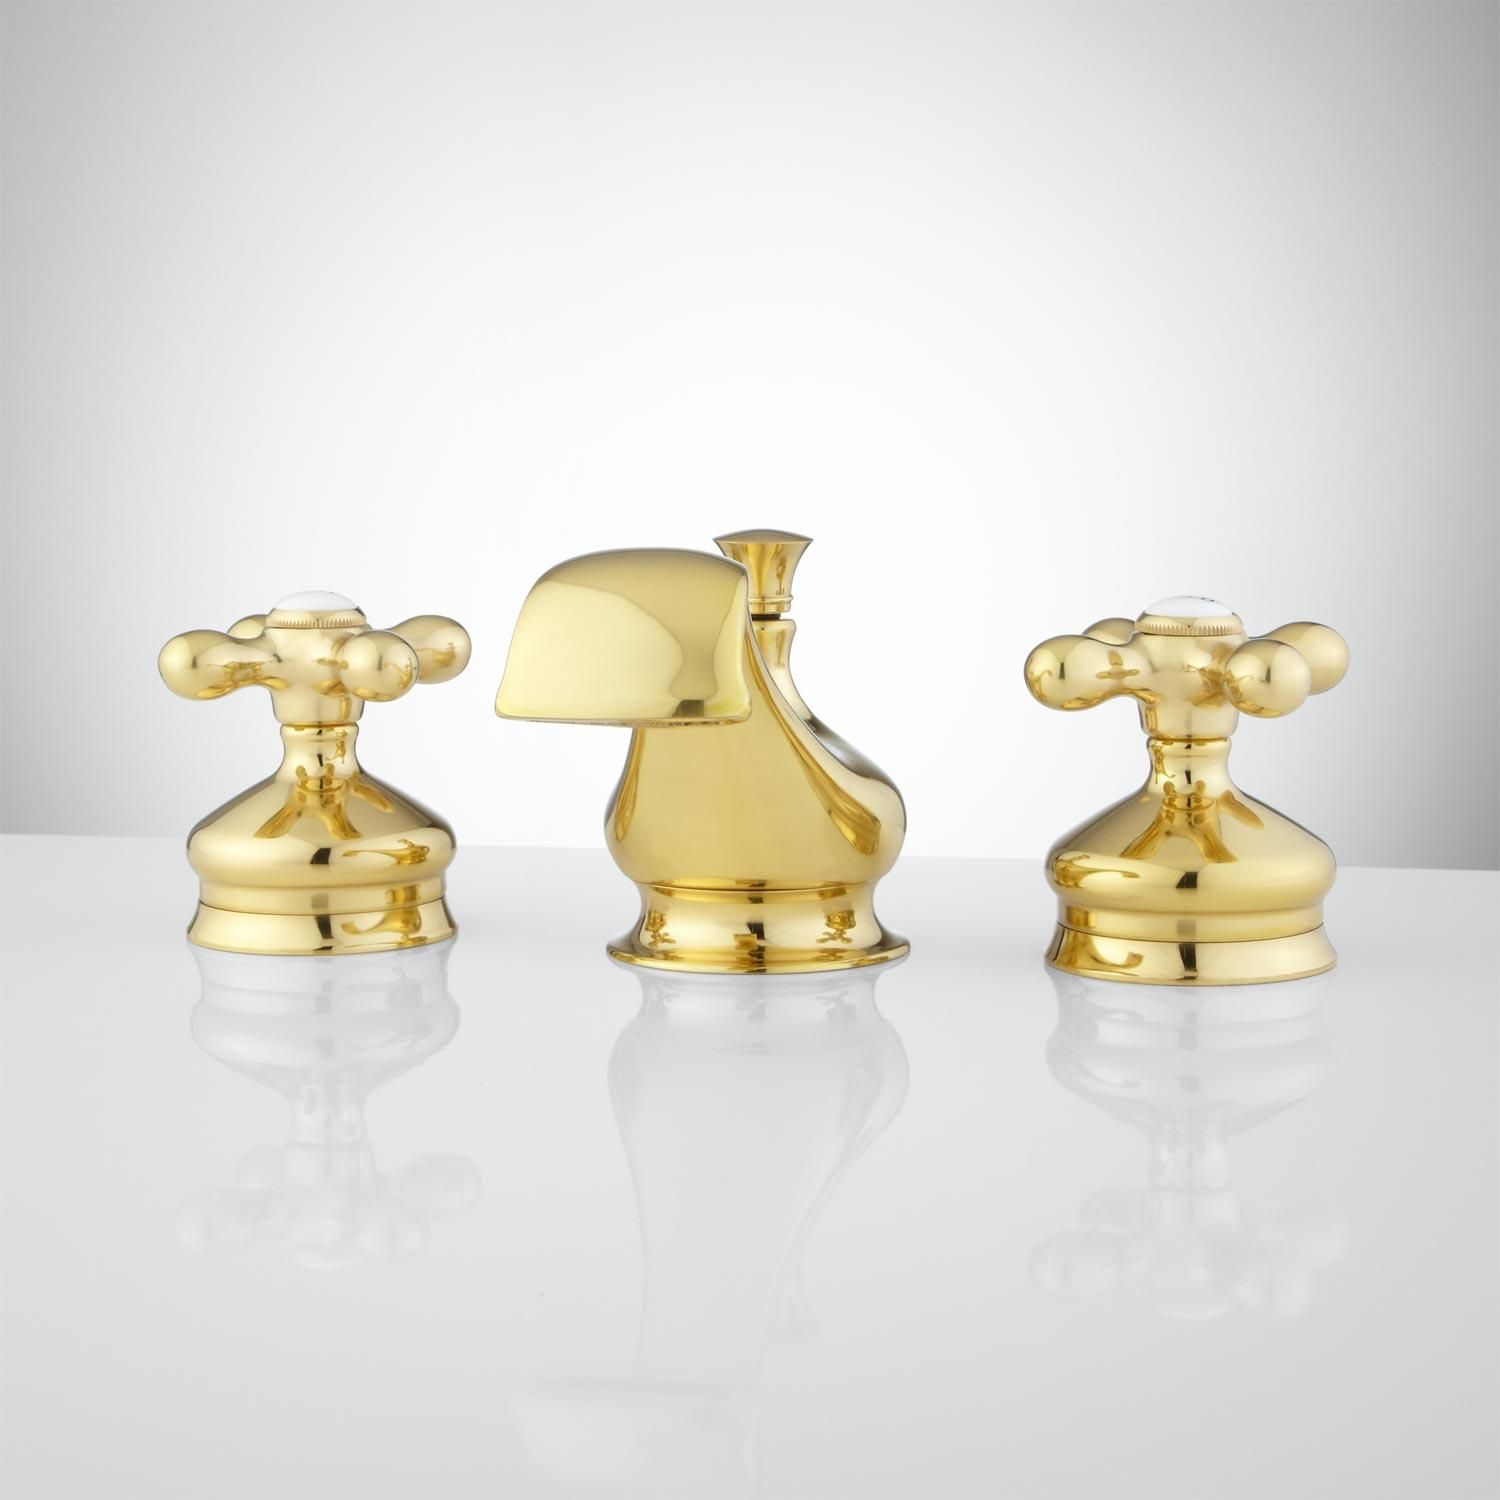 Polished brass widespread bathroom faucet - Polished Brass Shannon Widespread Bathroom Faucet